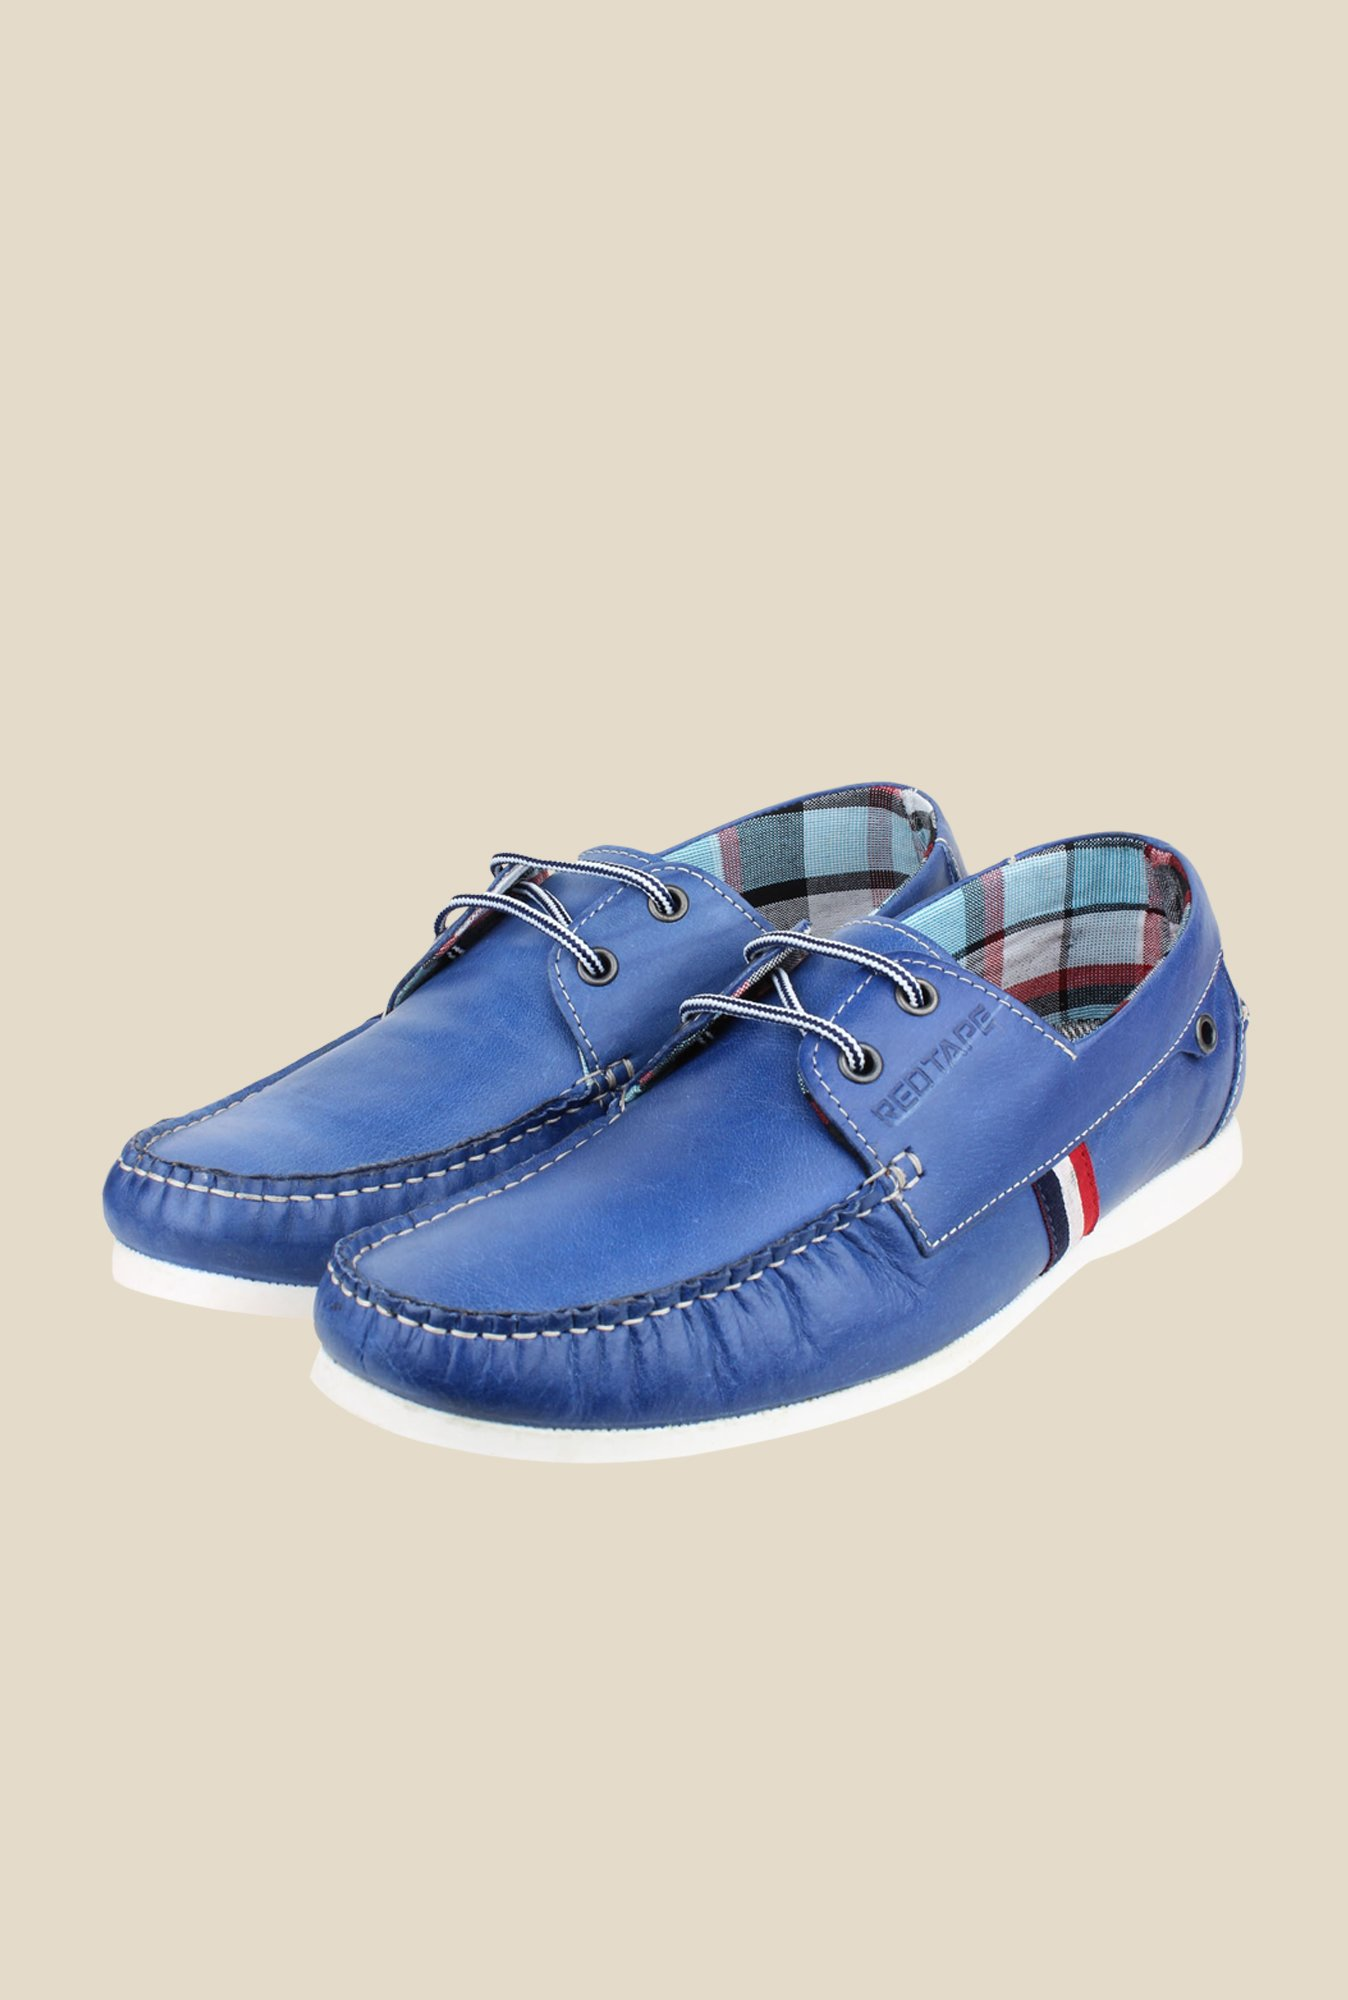 Red Tape Blue Casual Shoes